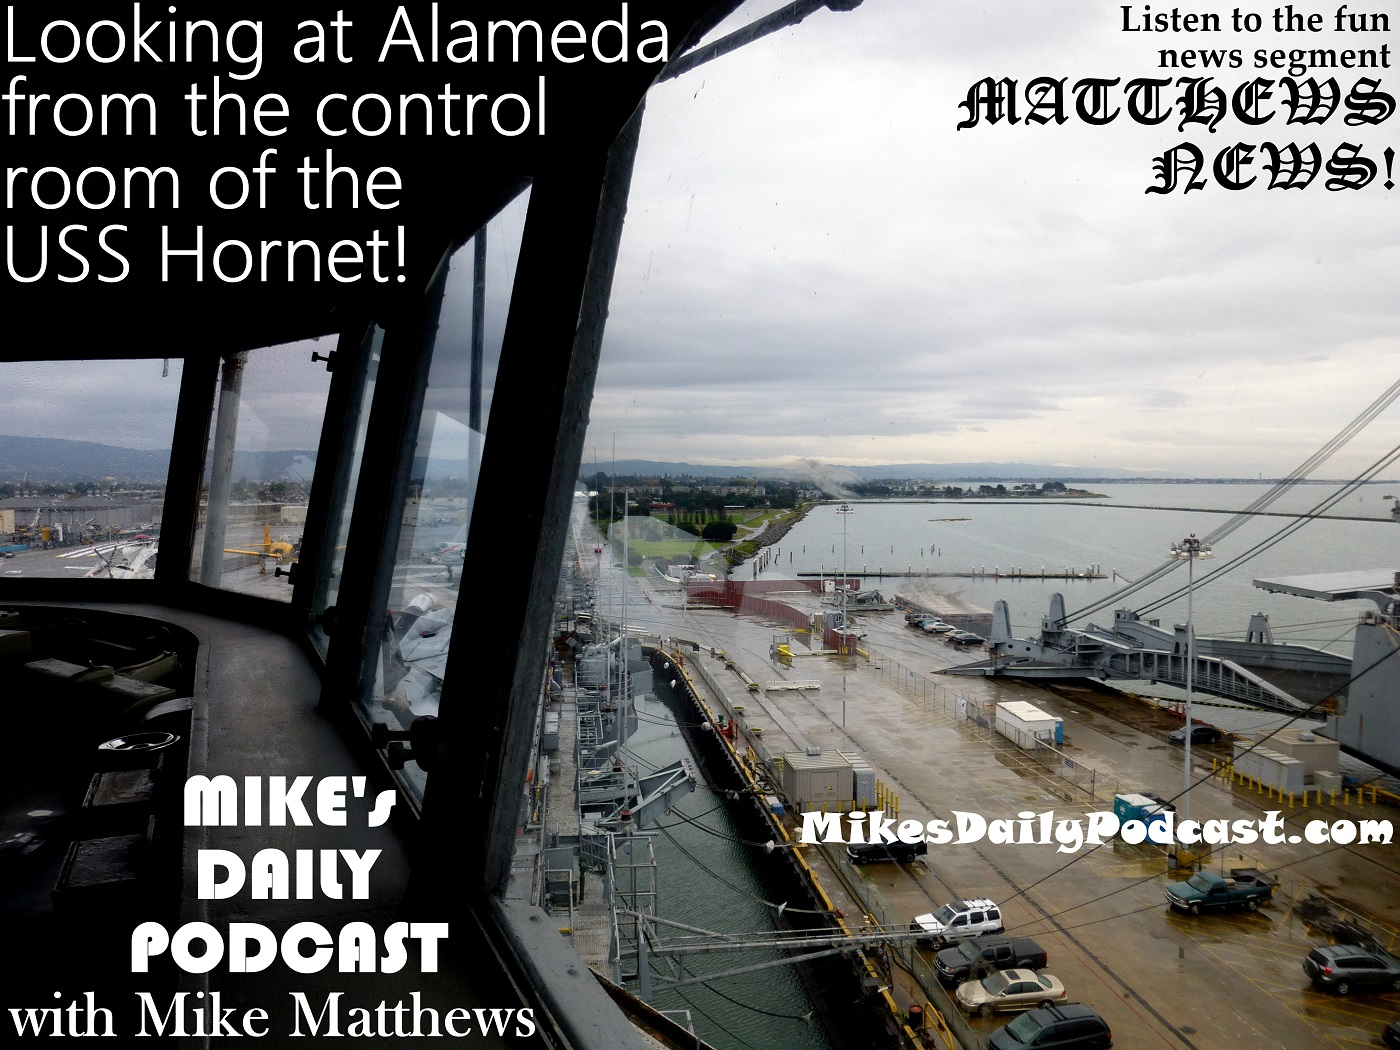 MIKEs DAILY PODCAST 926 USS Hornet Alameda